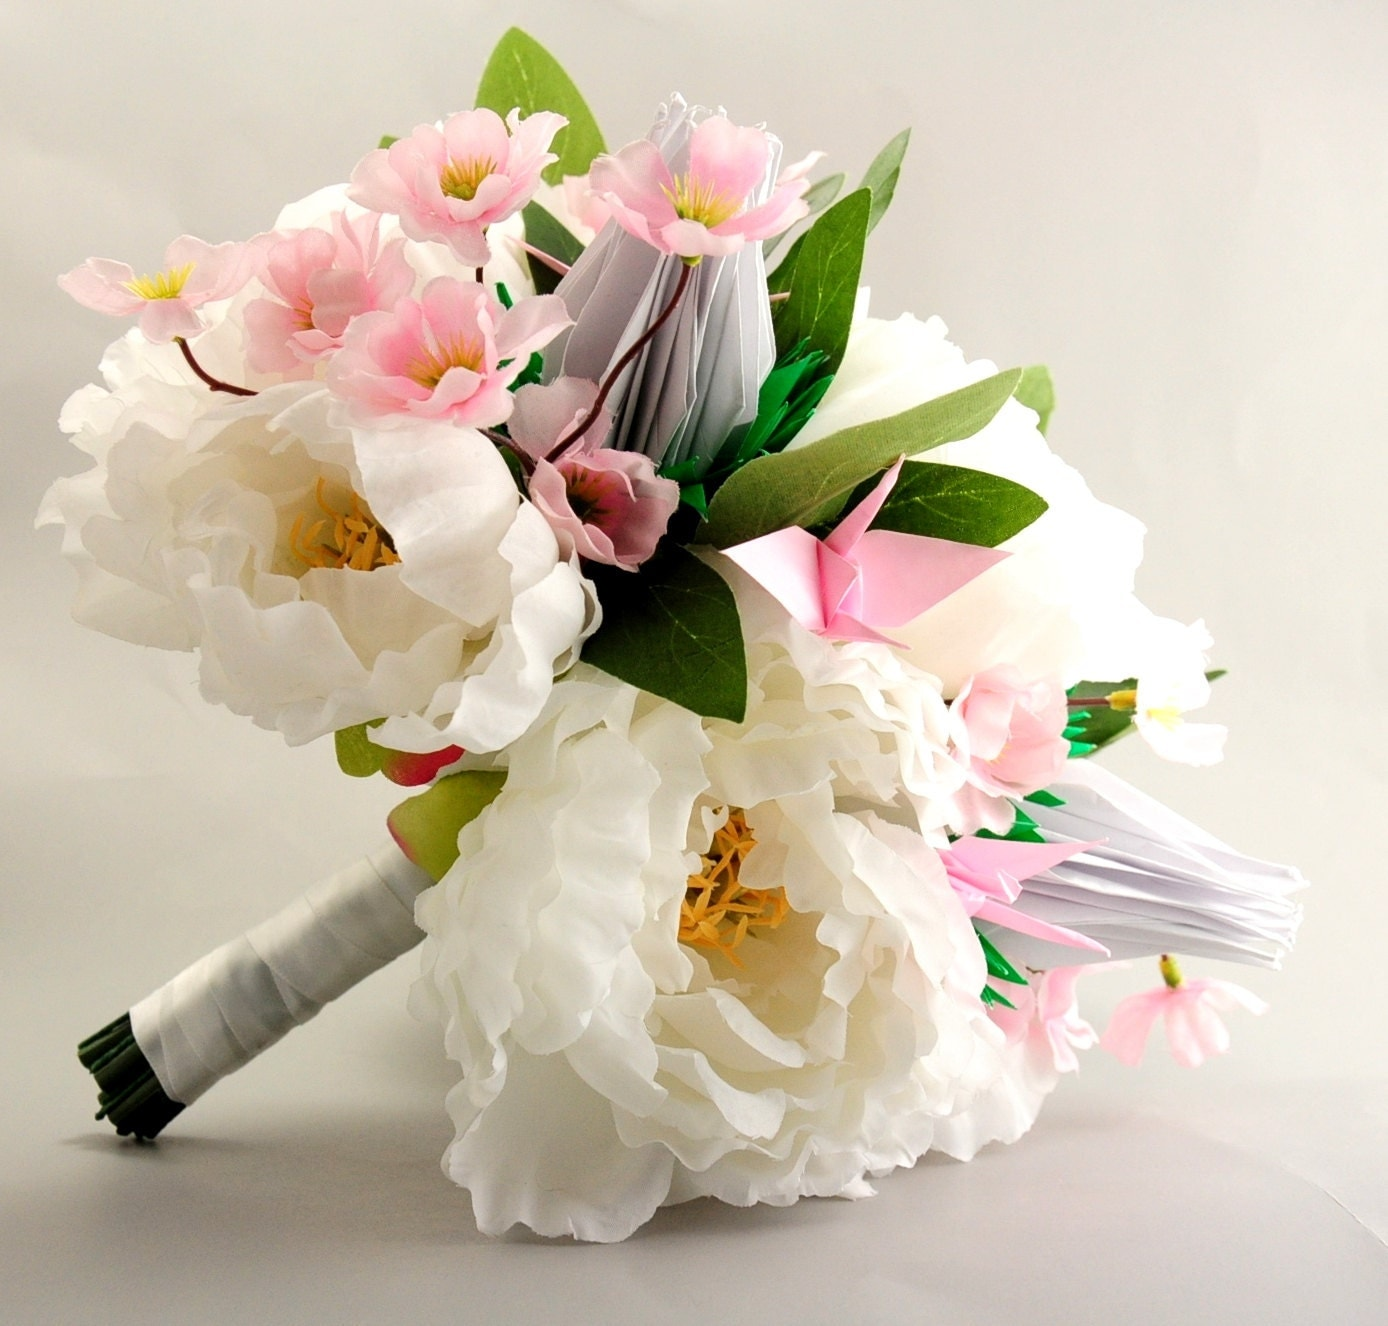 Peony cherry blossom and origami crane rose bridal by 3dcranes for Bouquet roses blanches